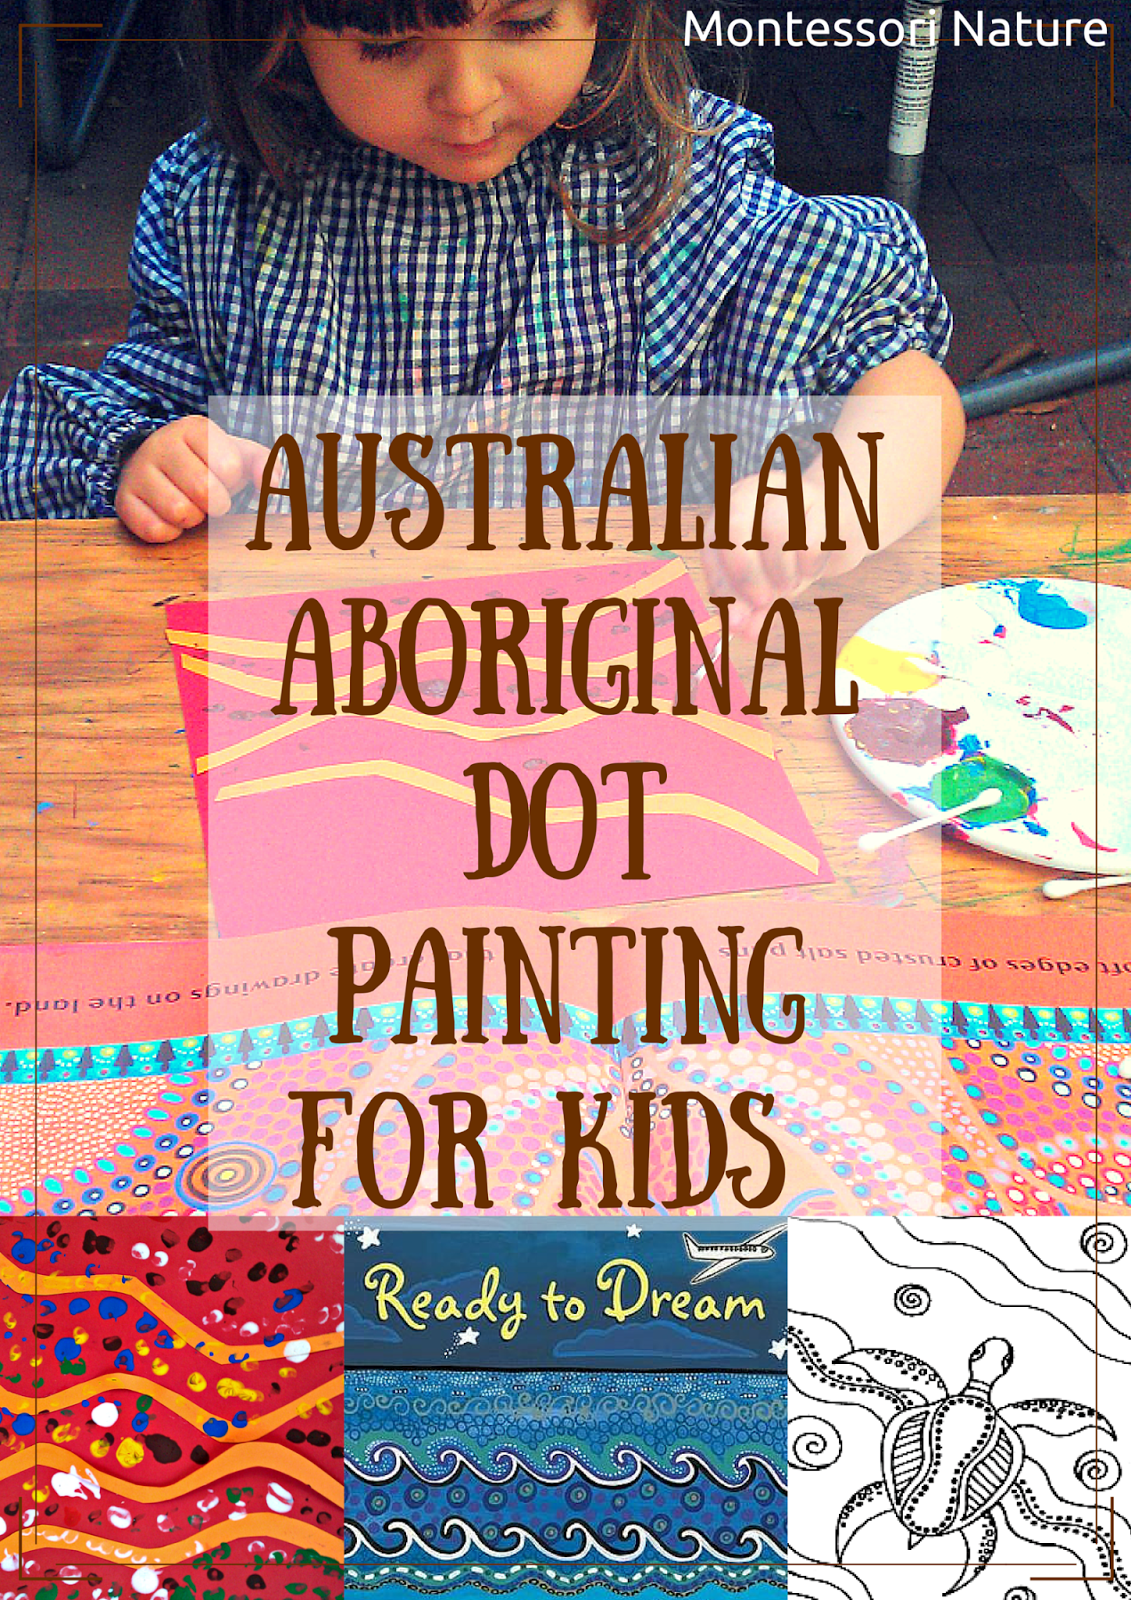 Australian Aboriginal Dot Painting For Kids And Art Resources